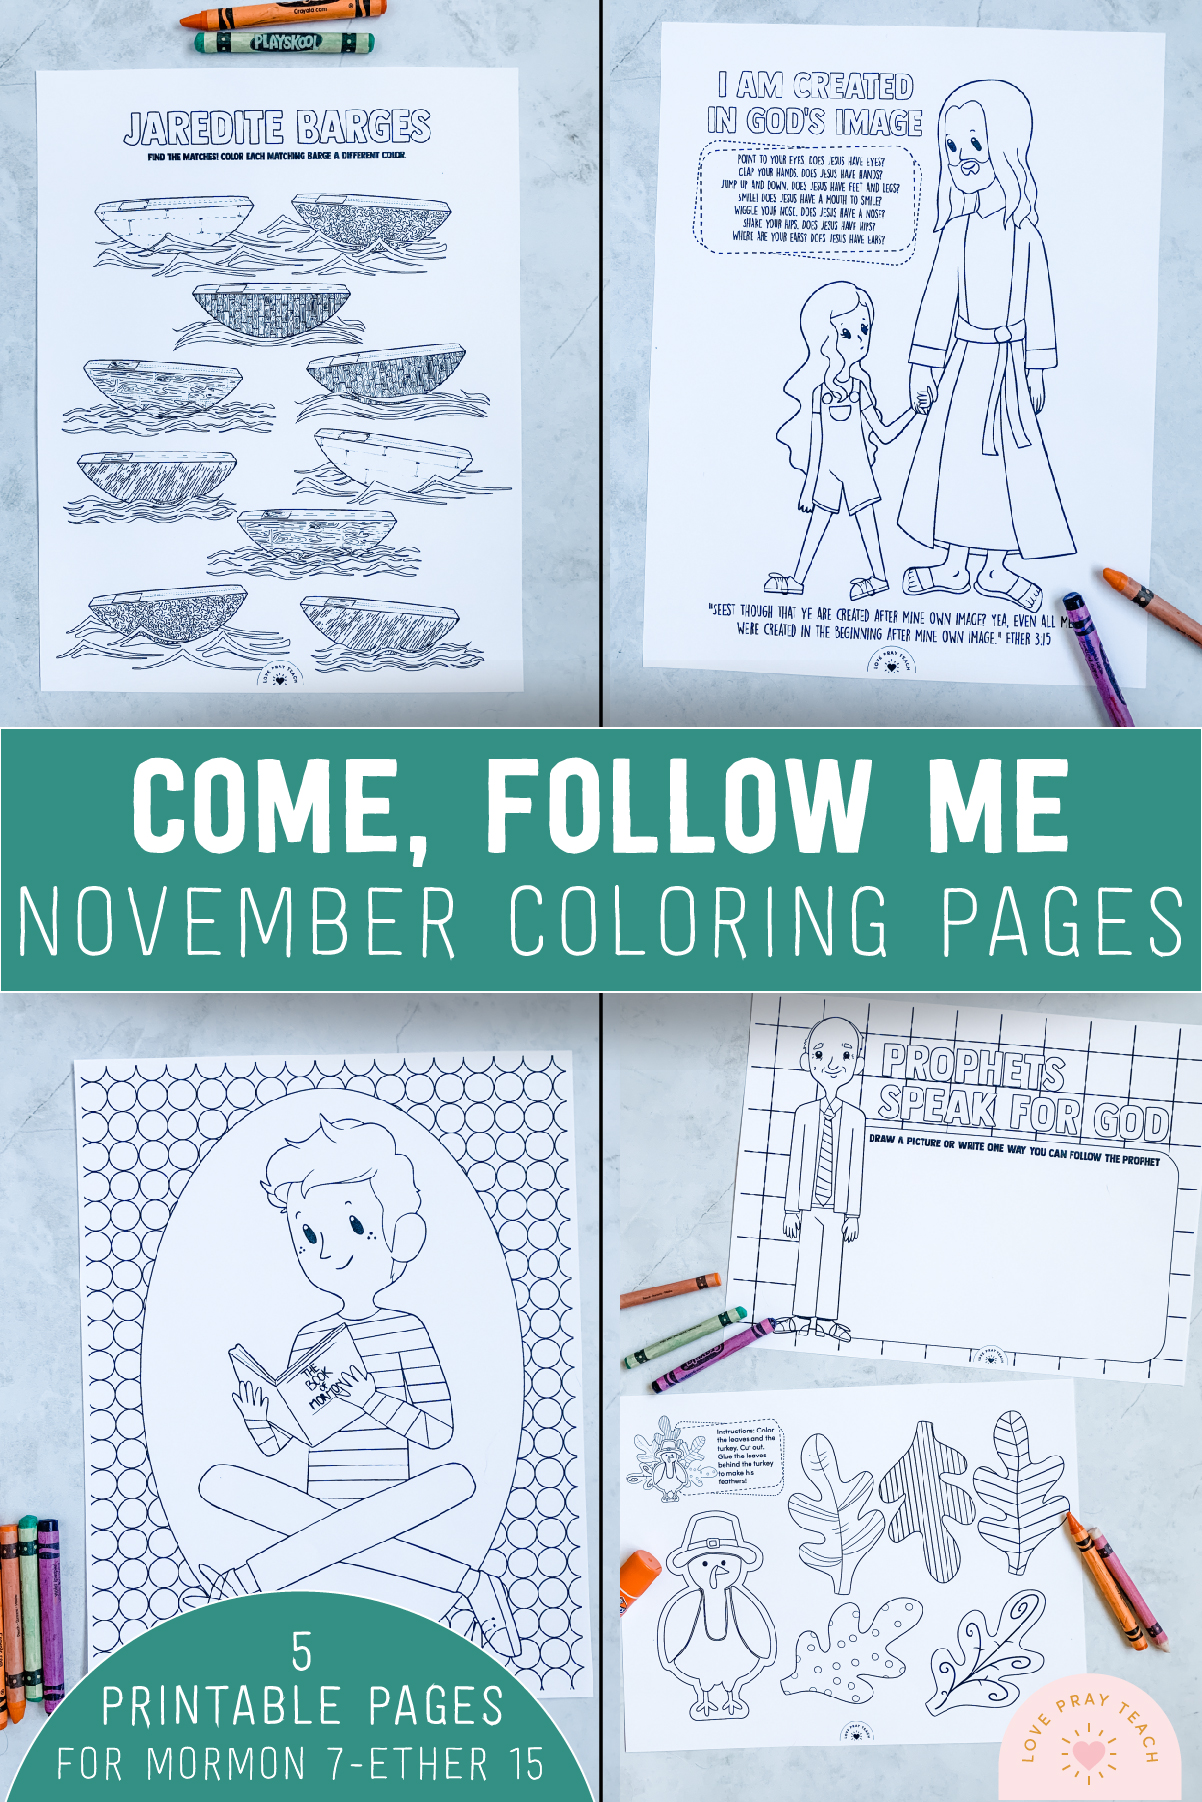 November 2020 Come Follow Me Coloring Pages www.LovePrayTeach.com